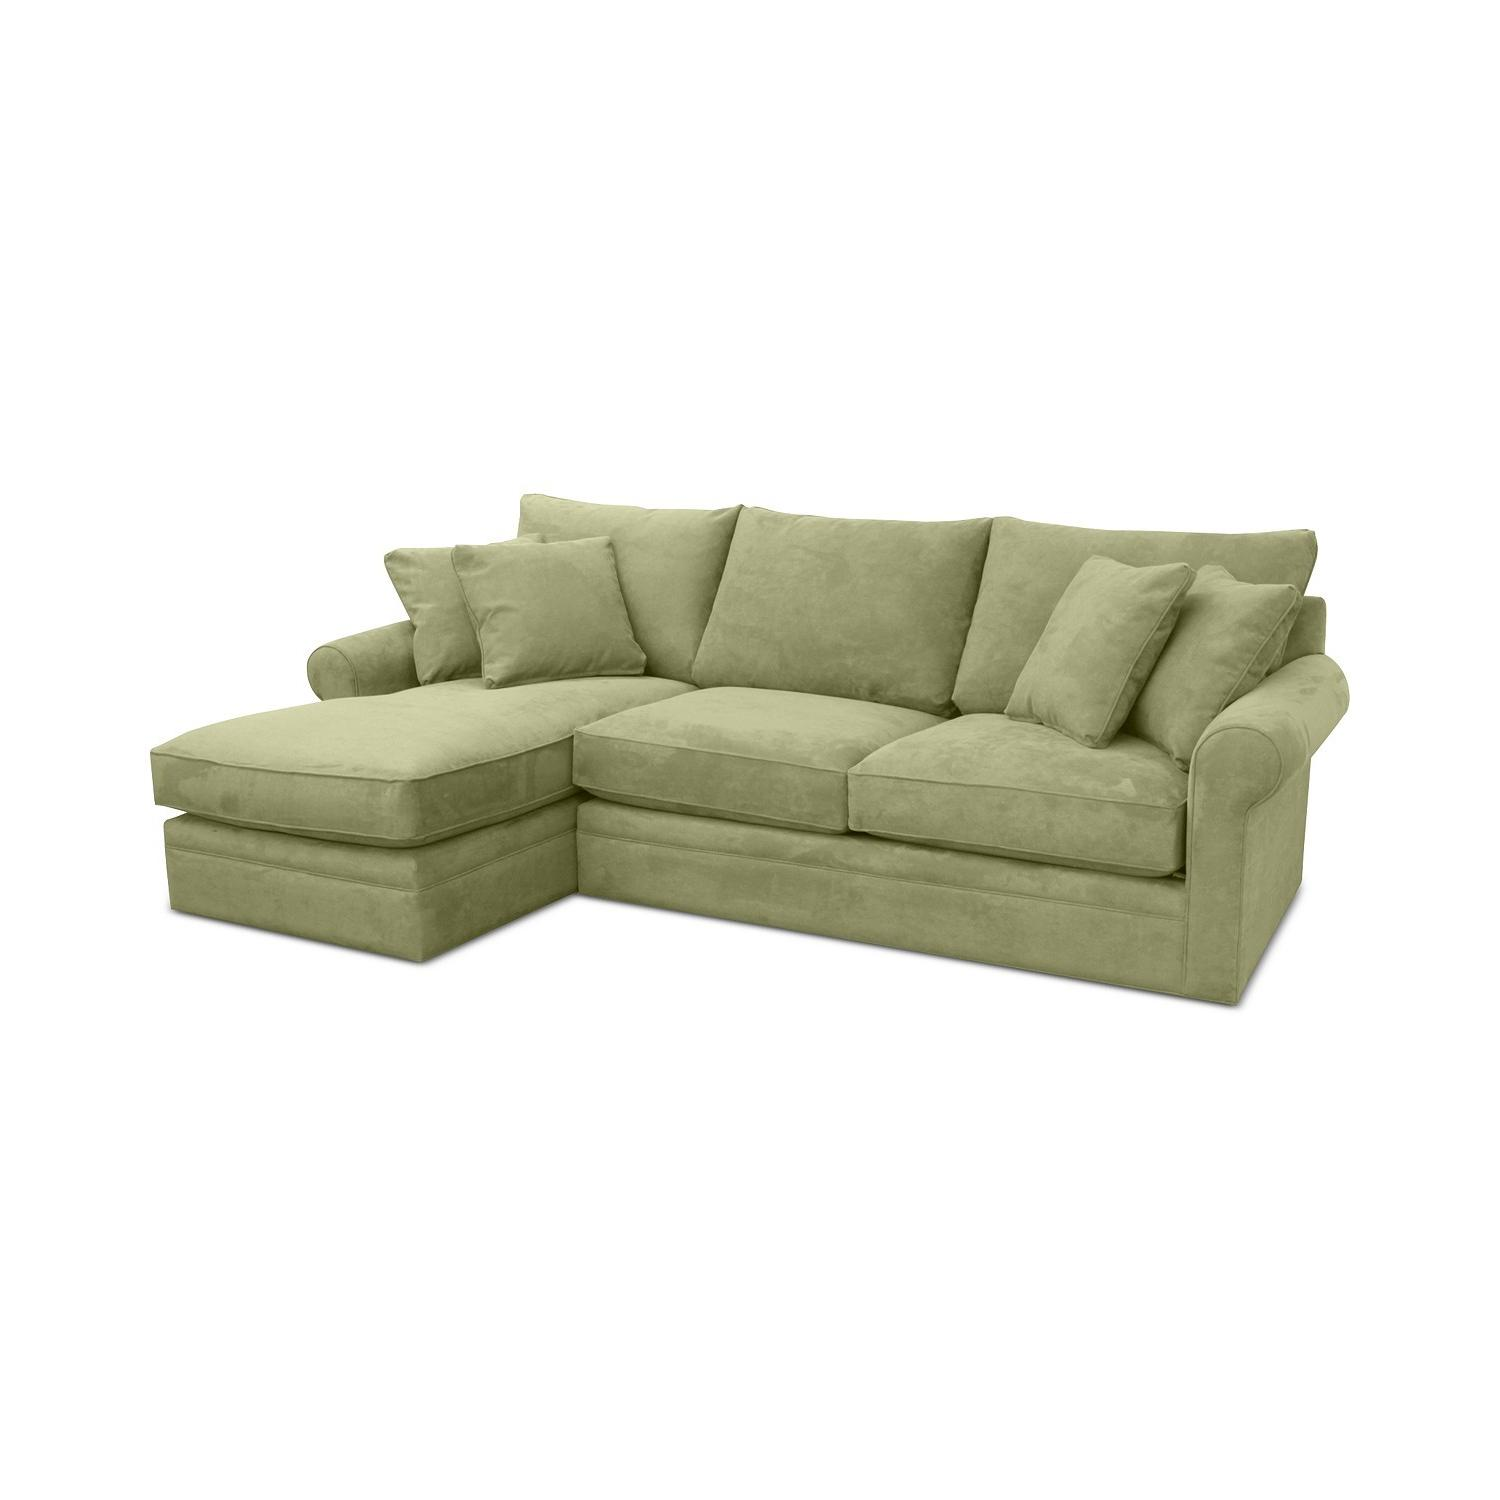 Macys Doss II 2Pc Fabric Chaise Sectional Sofa AptDeco